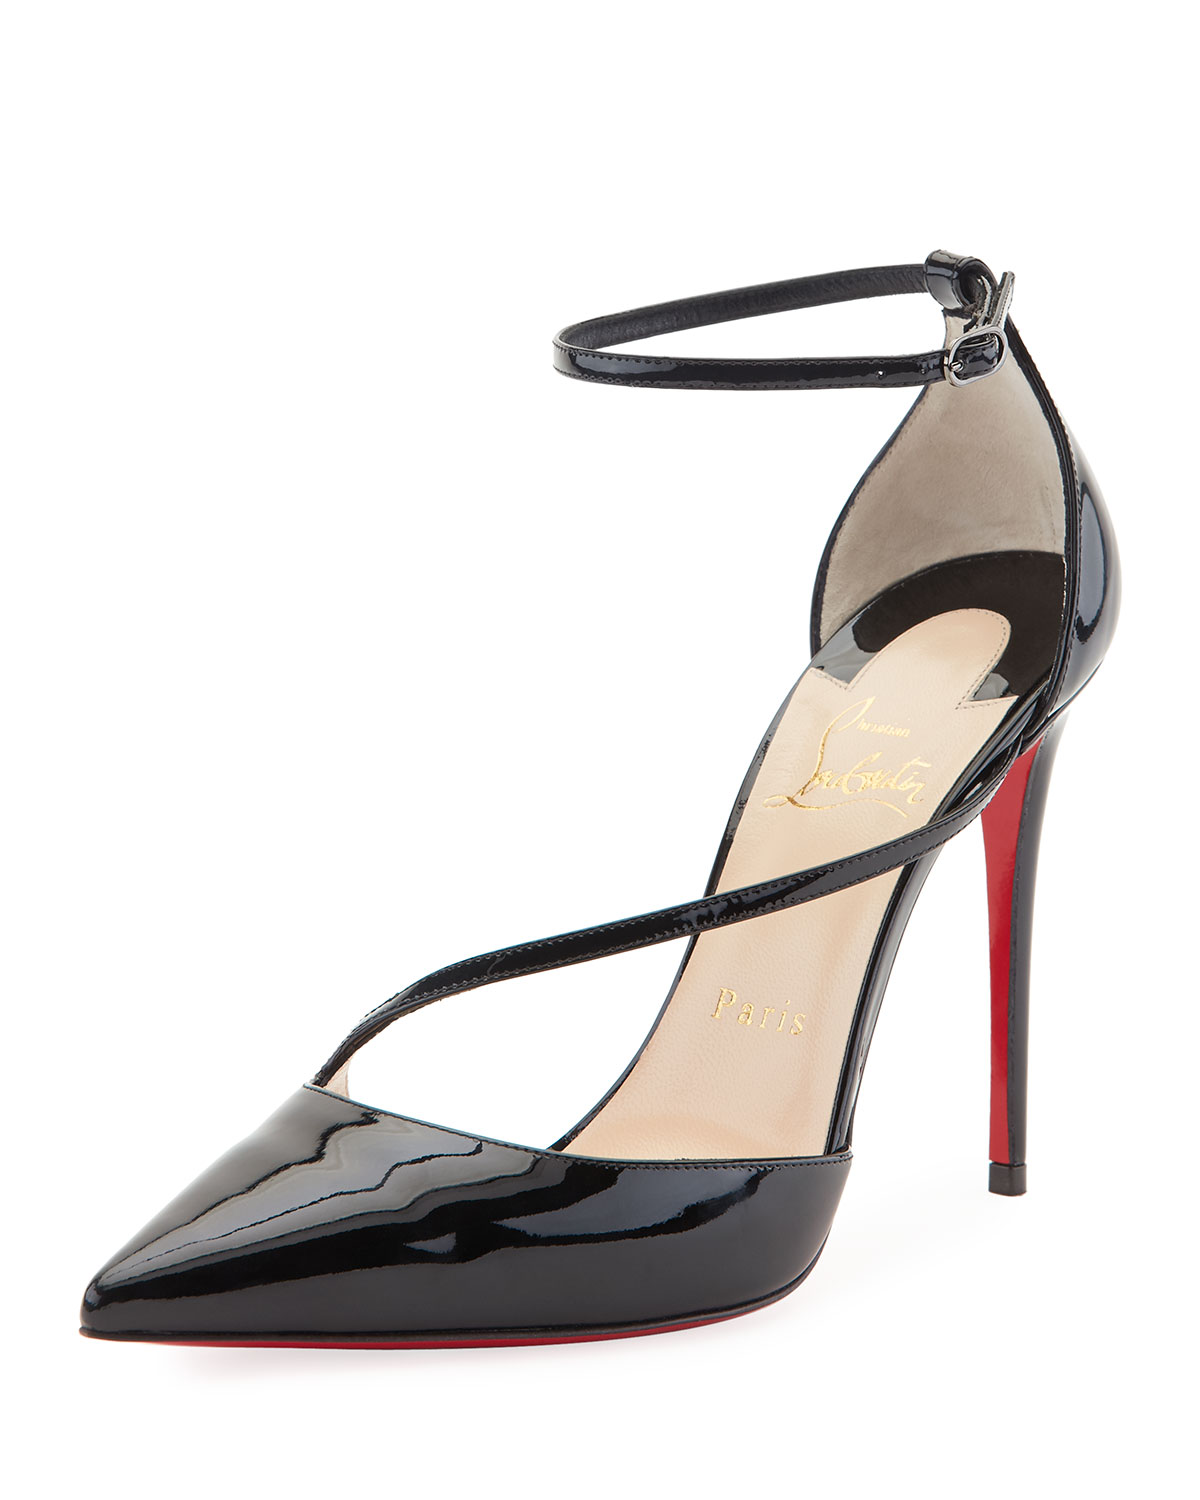 5c59b87d39a Christian Louboutin Women's Shoes and Boots at MuchosBesitos